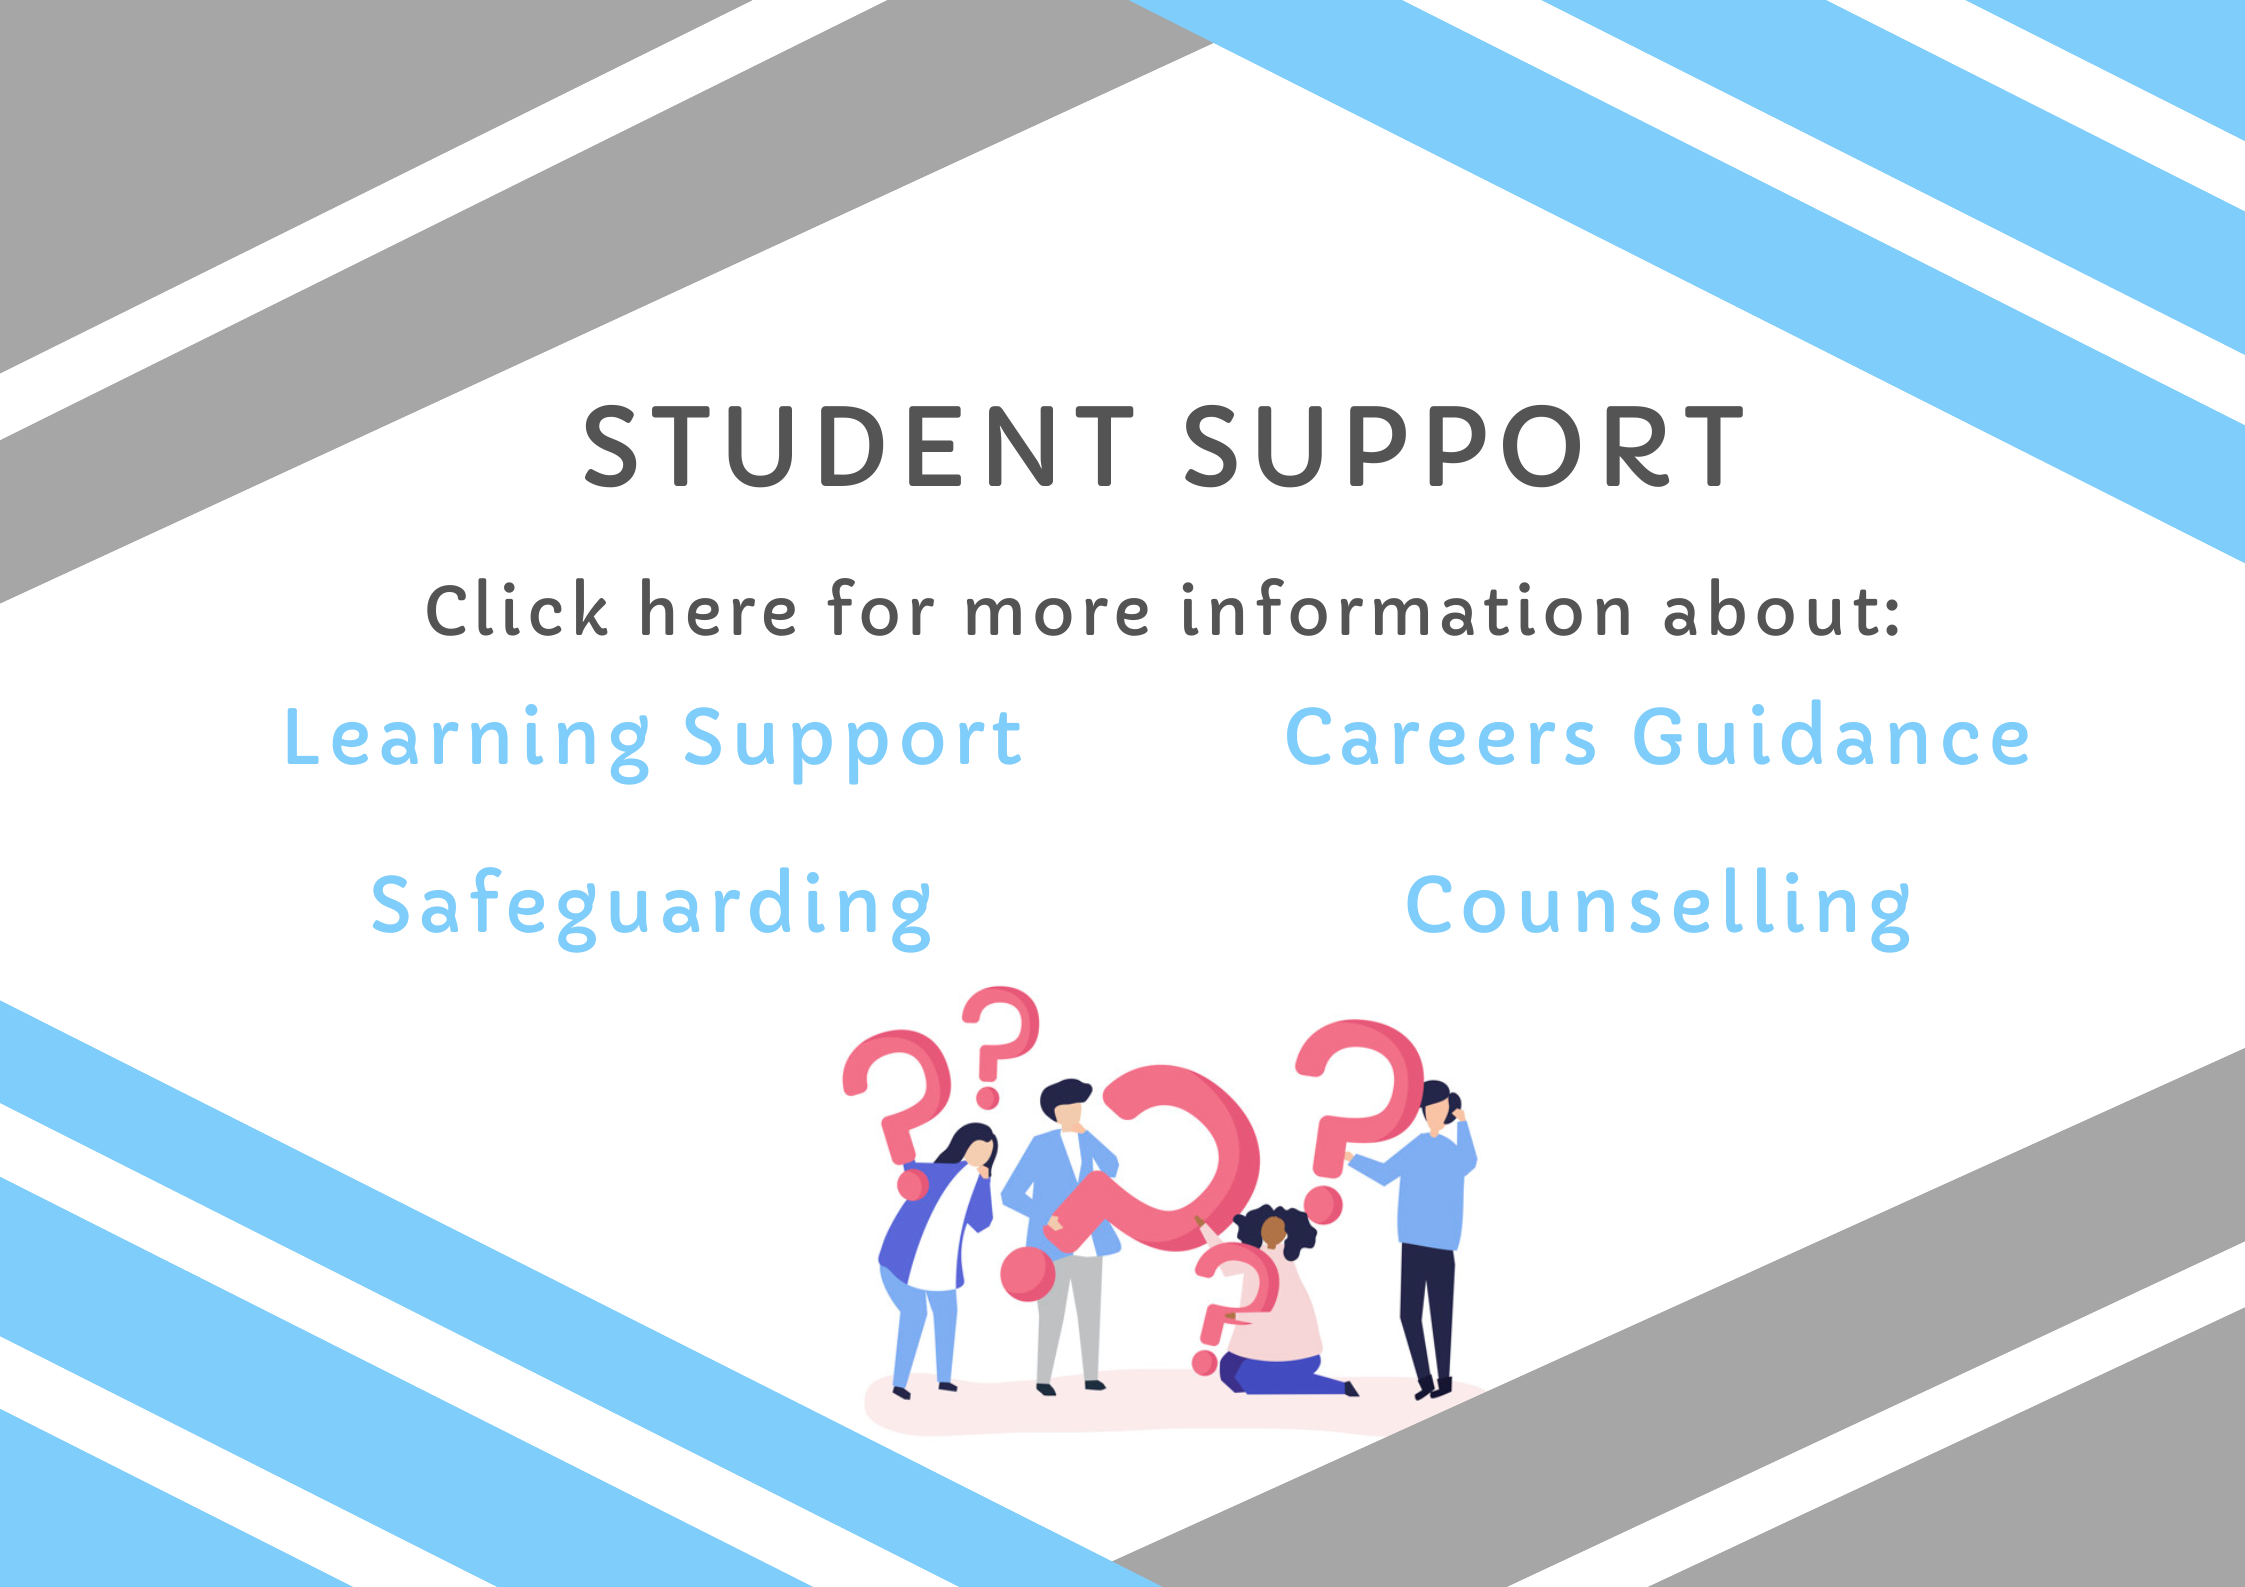 Student support image, click on the image to be taken to the support area which gives guidance on learning support, careers, safeguarding and counselling.